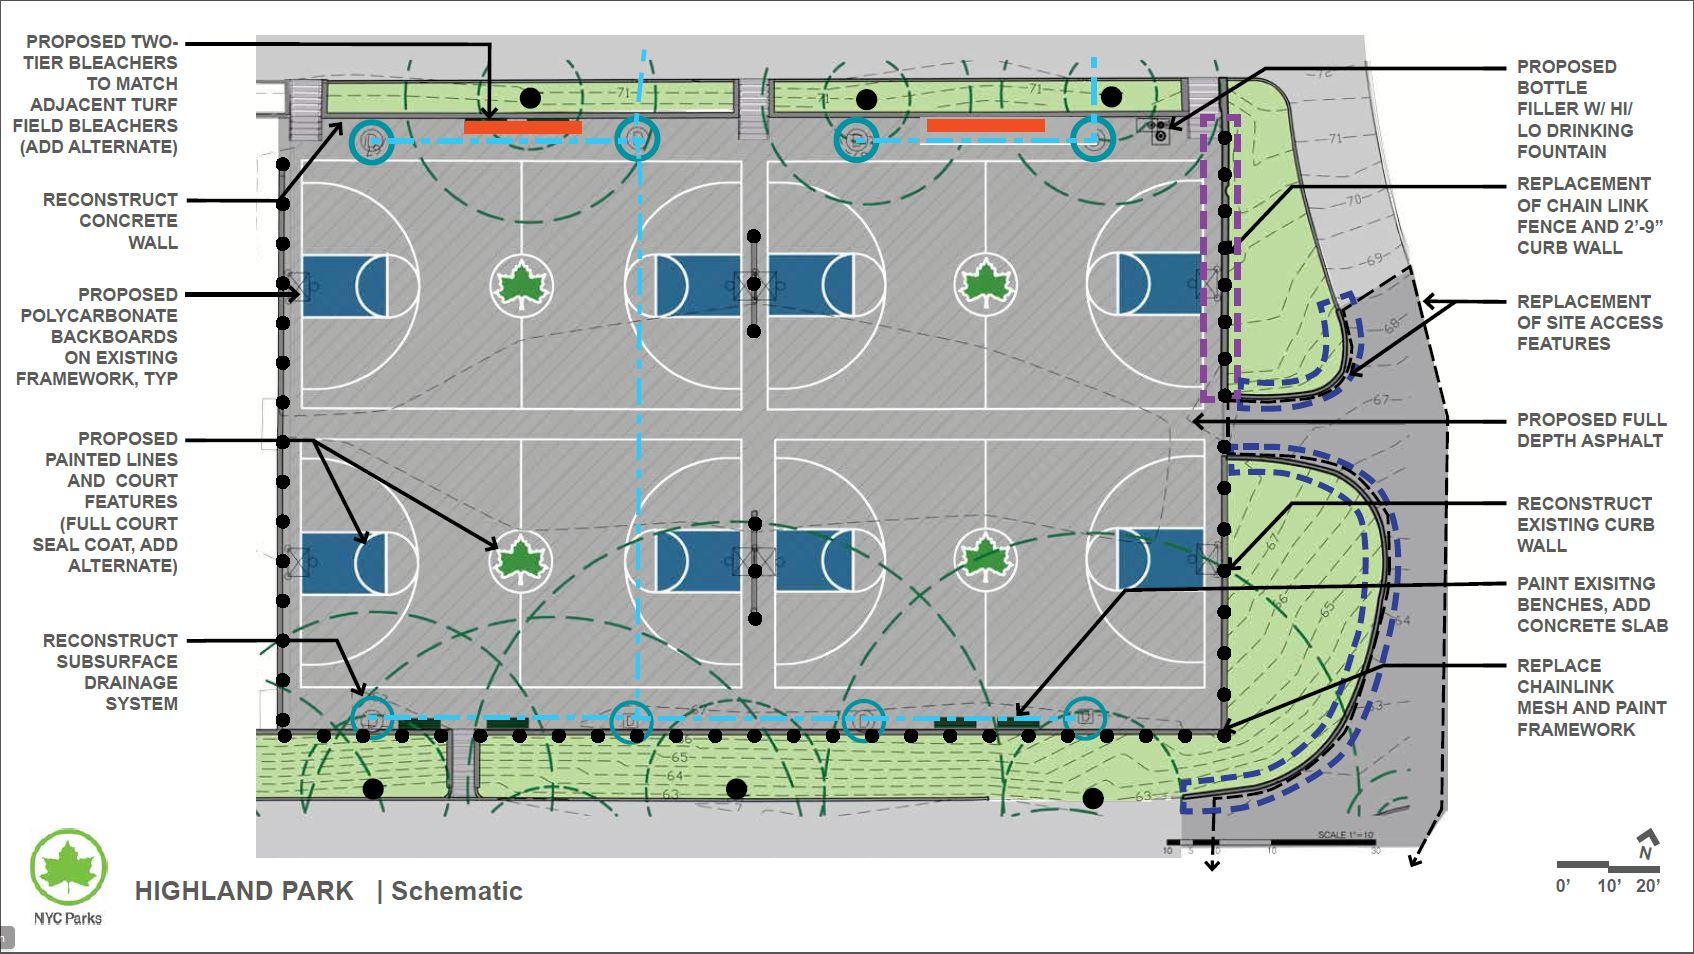 Design of Highland Park Basketball Courts Reconstruction